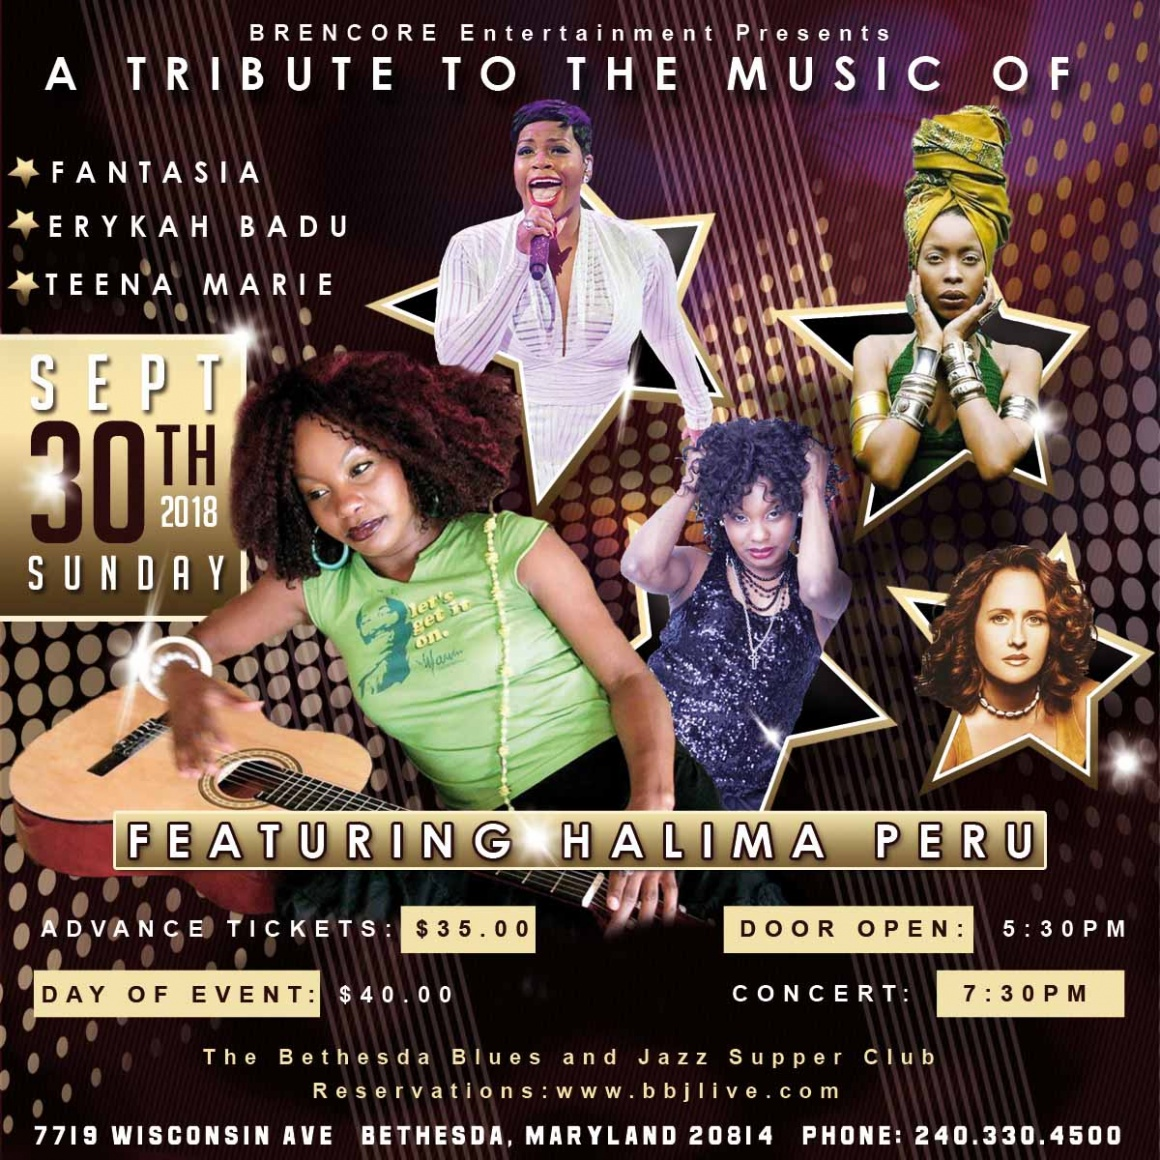 A Tribute to the Music of Fantasia, Erykah Badu and Teena Marie